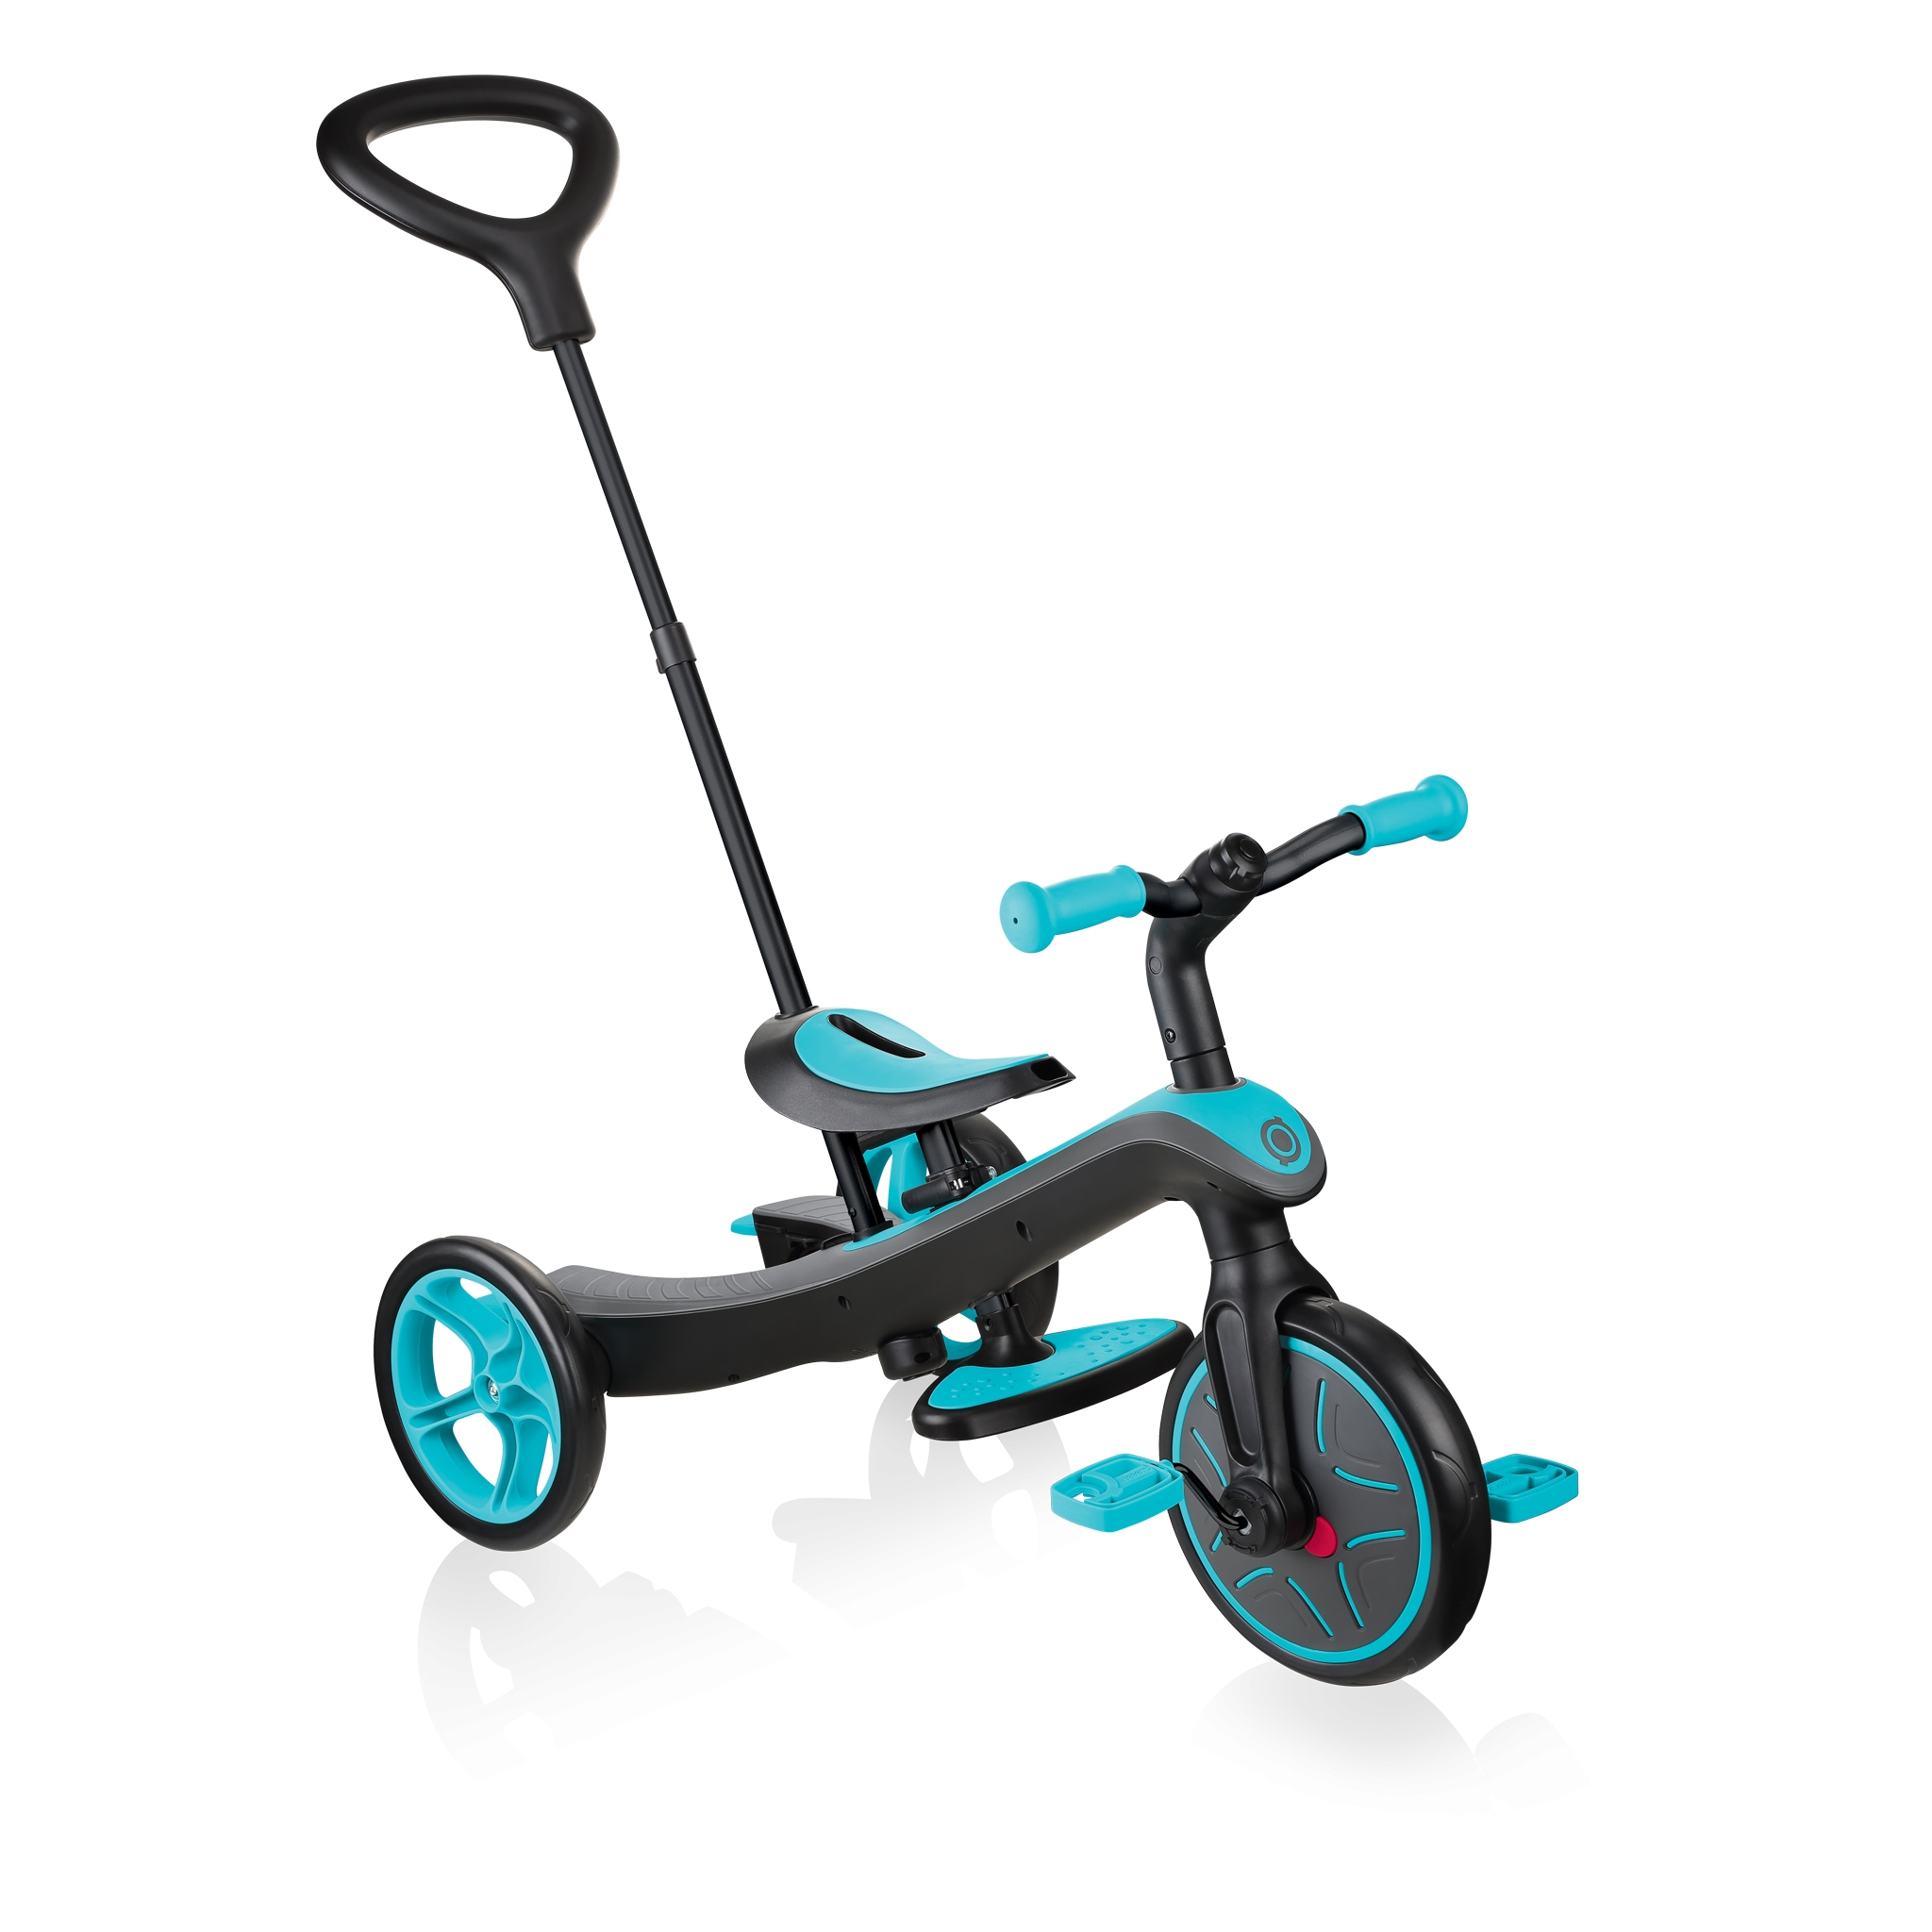 Globber-EXPLORER-TRIKE-4in1-all-in-one-baby-tricycle-and-kids-balance-bike-stage2-guided-trike_teal